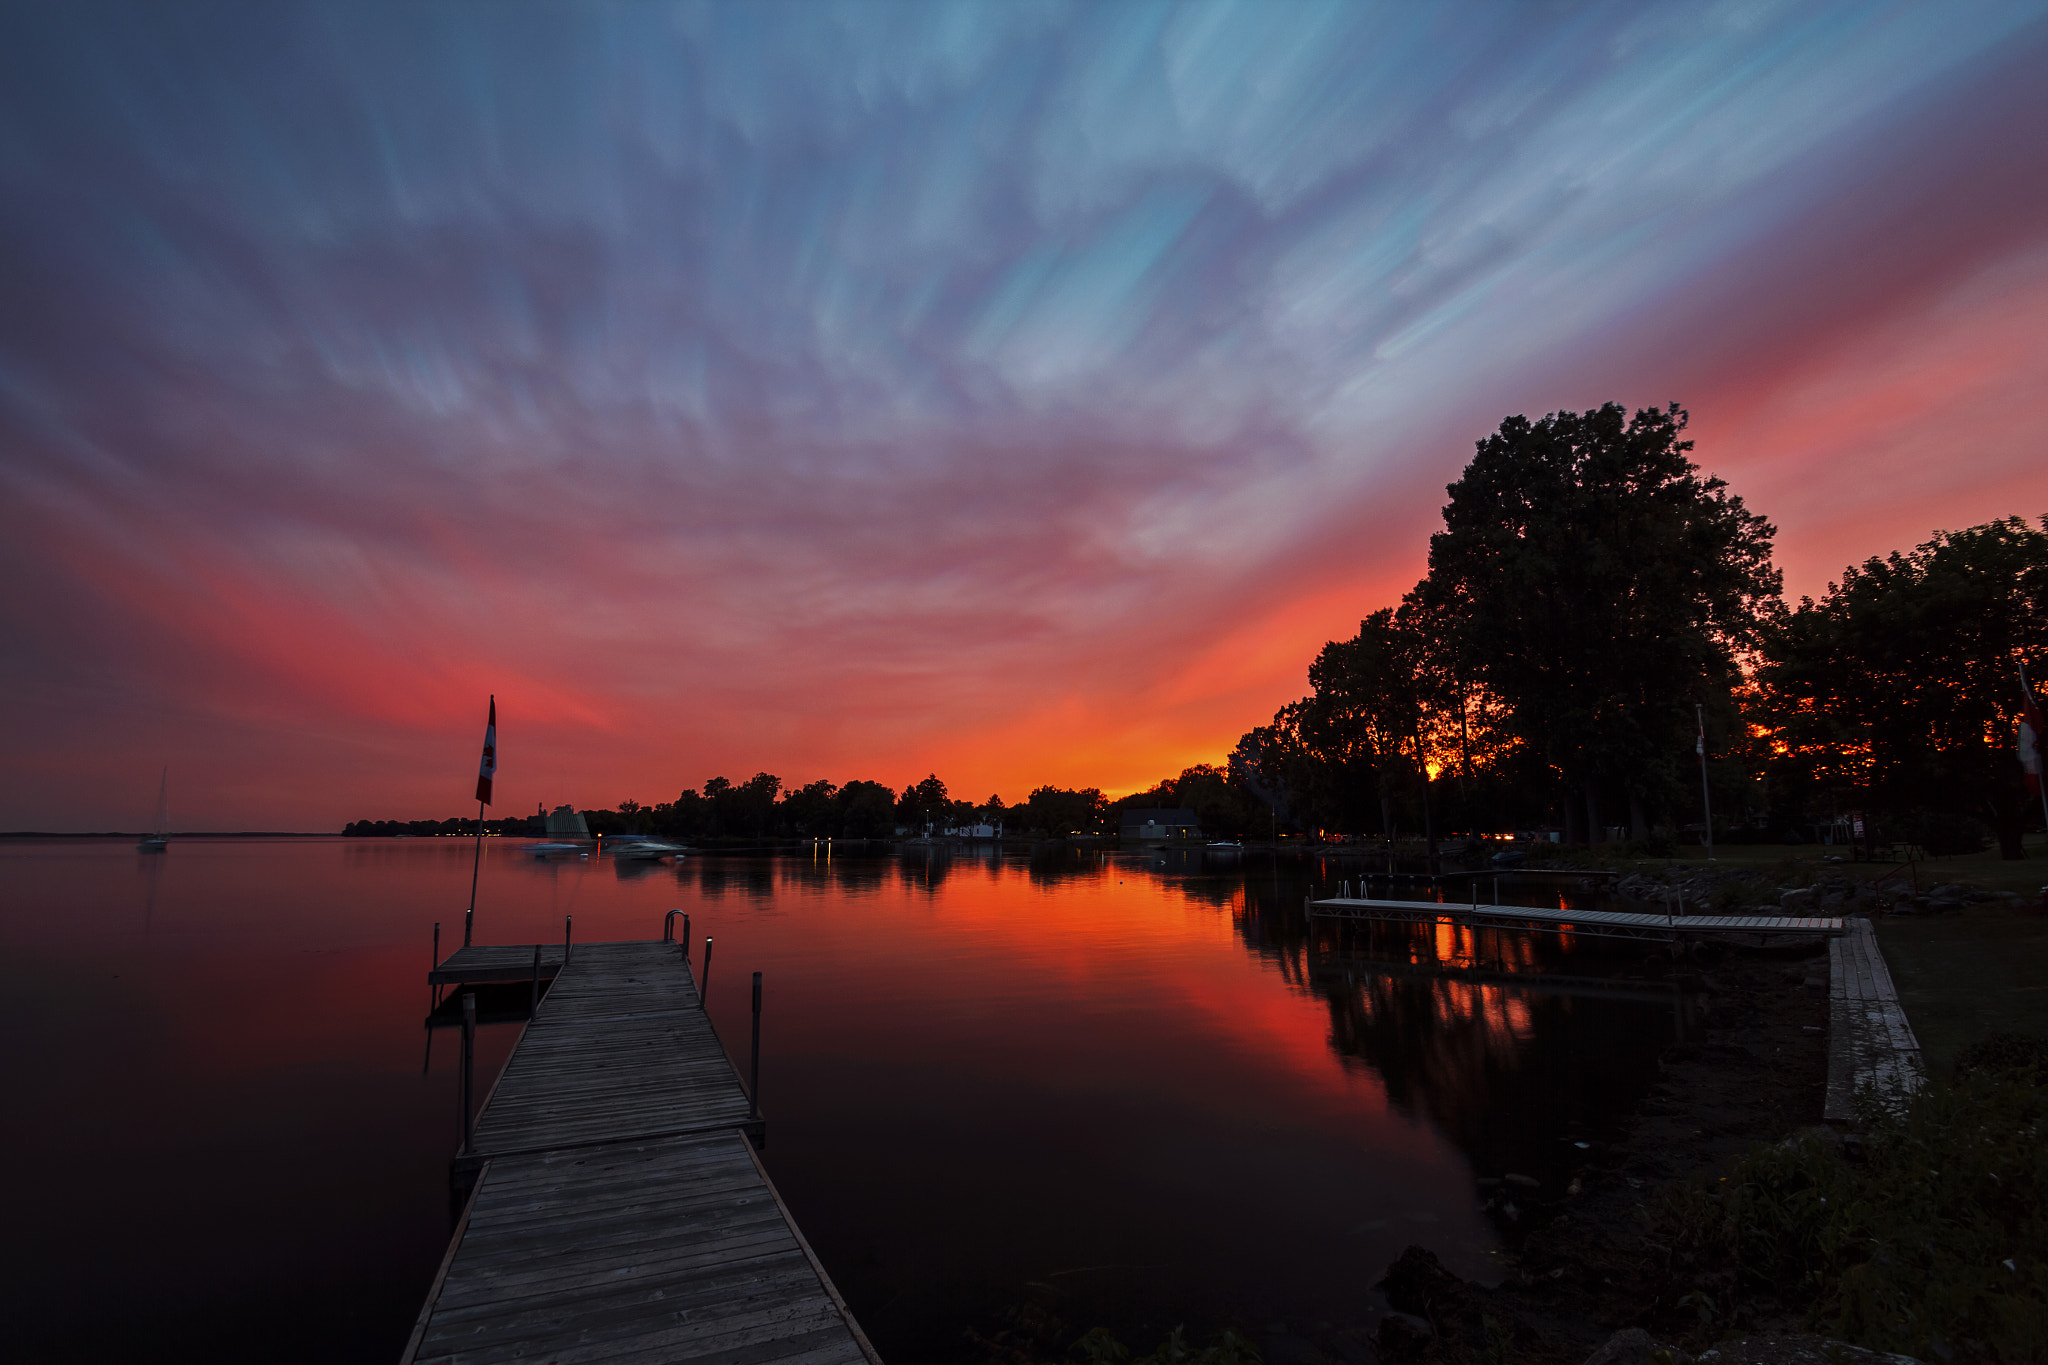 Photograph Red Water by Matt Molloy on 500px